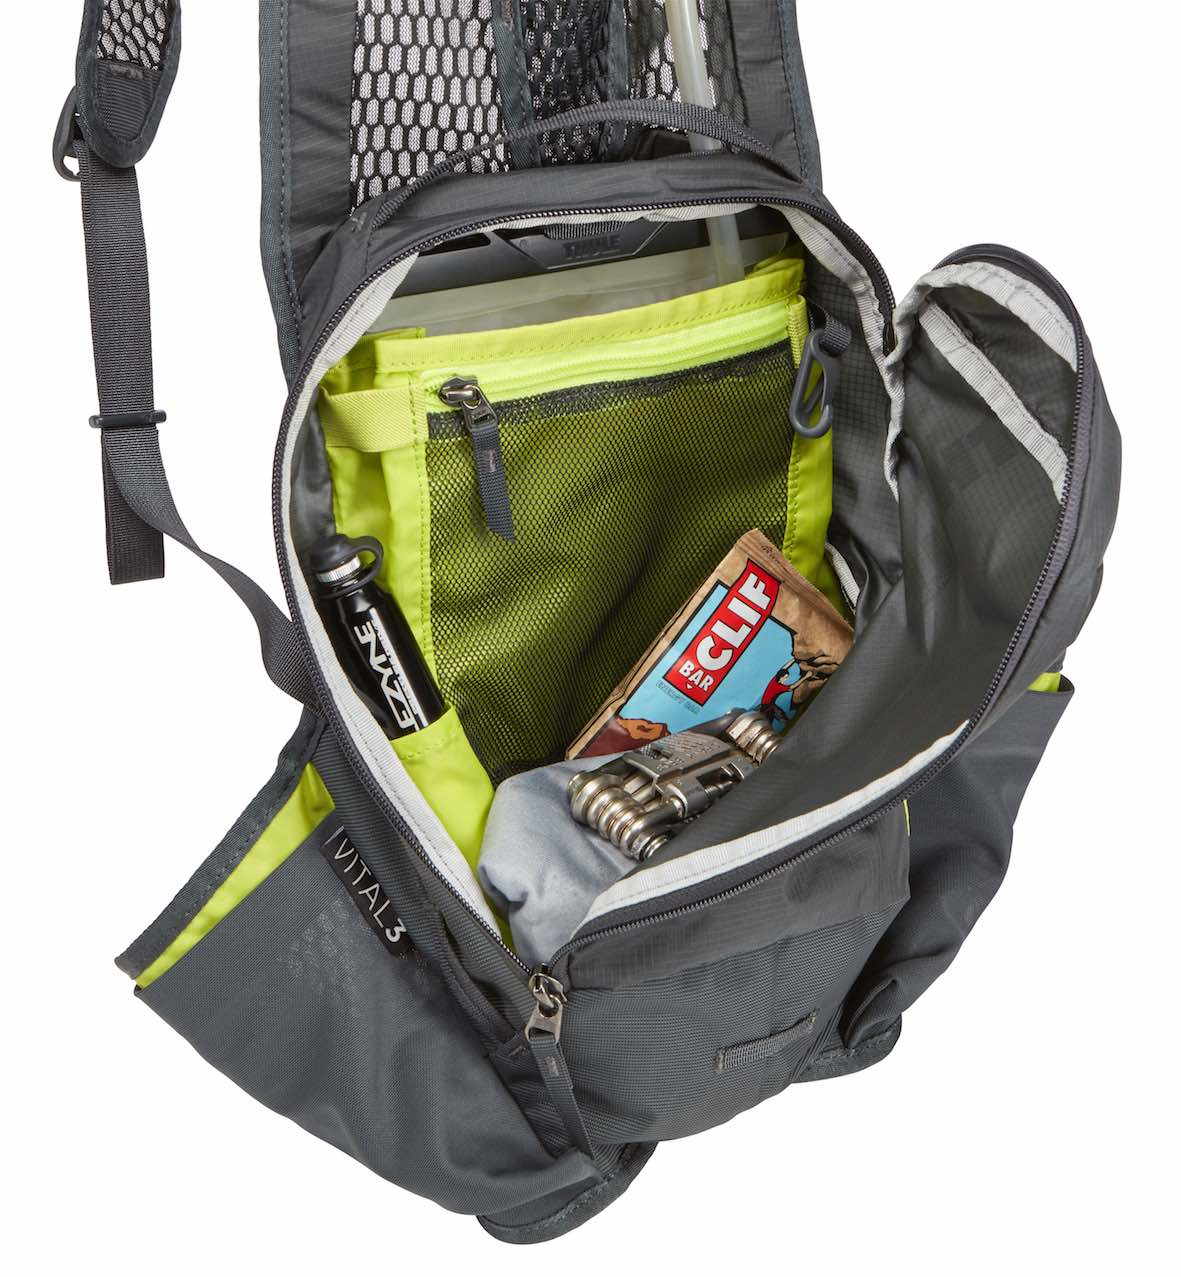 hule Vital Bike Hydration Backpack product feature